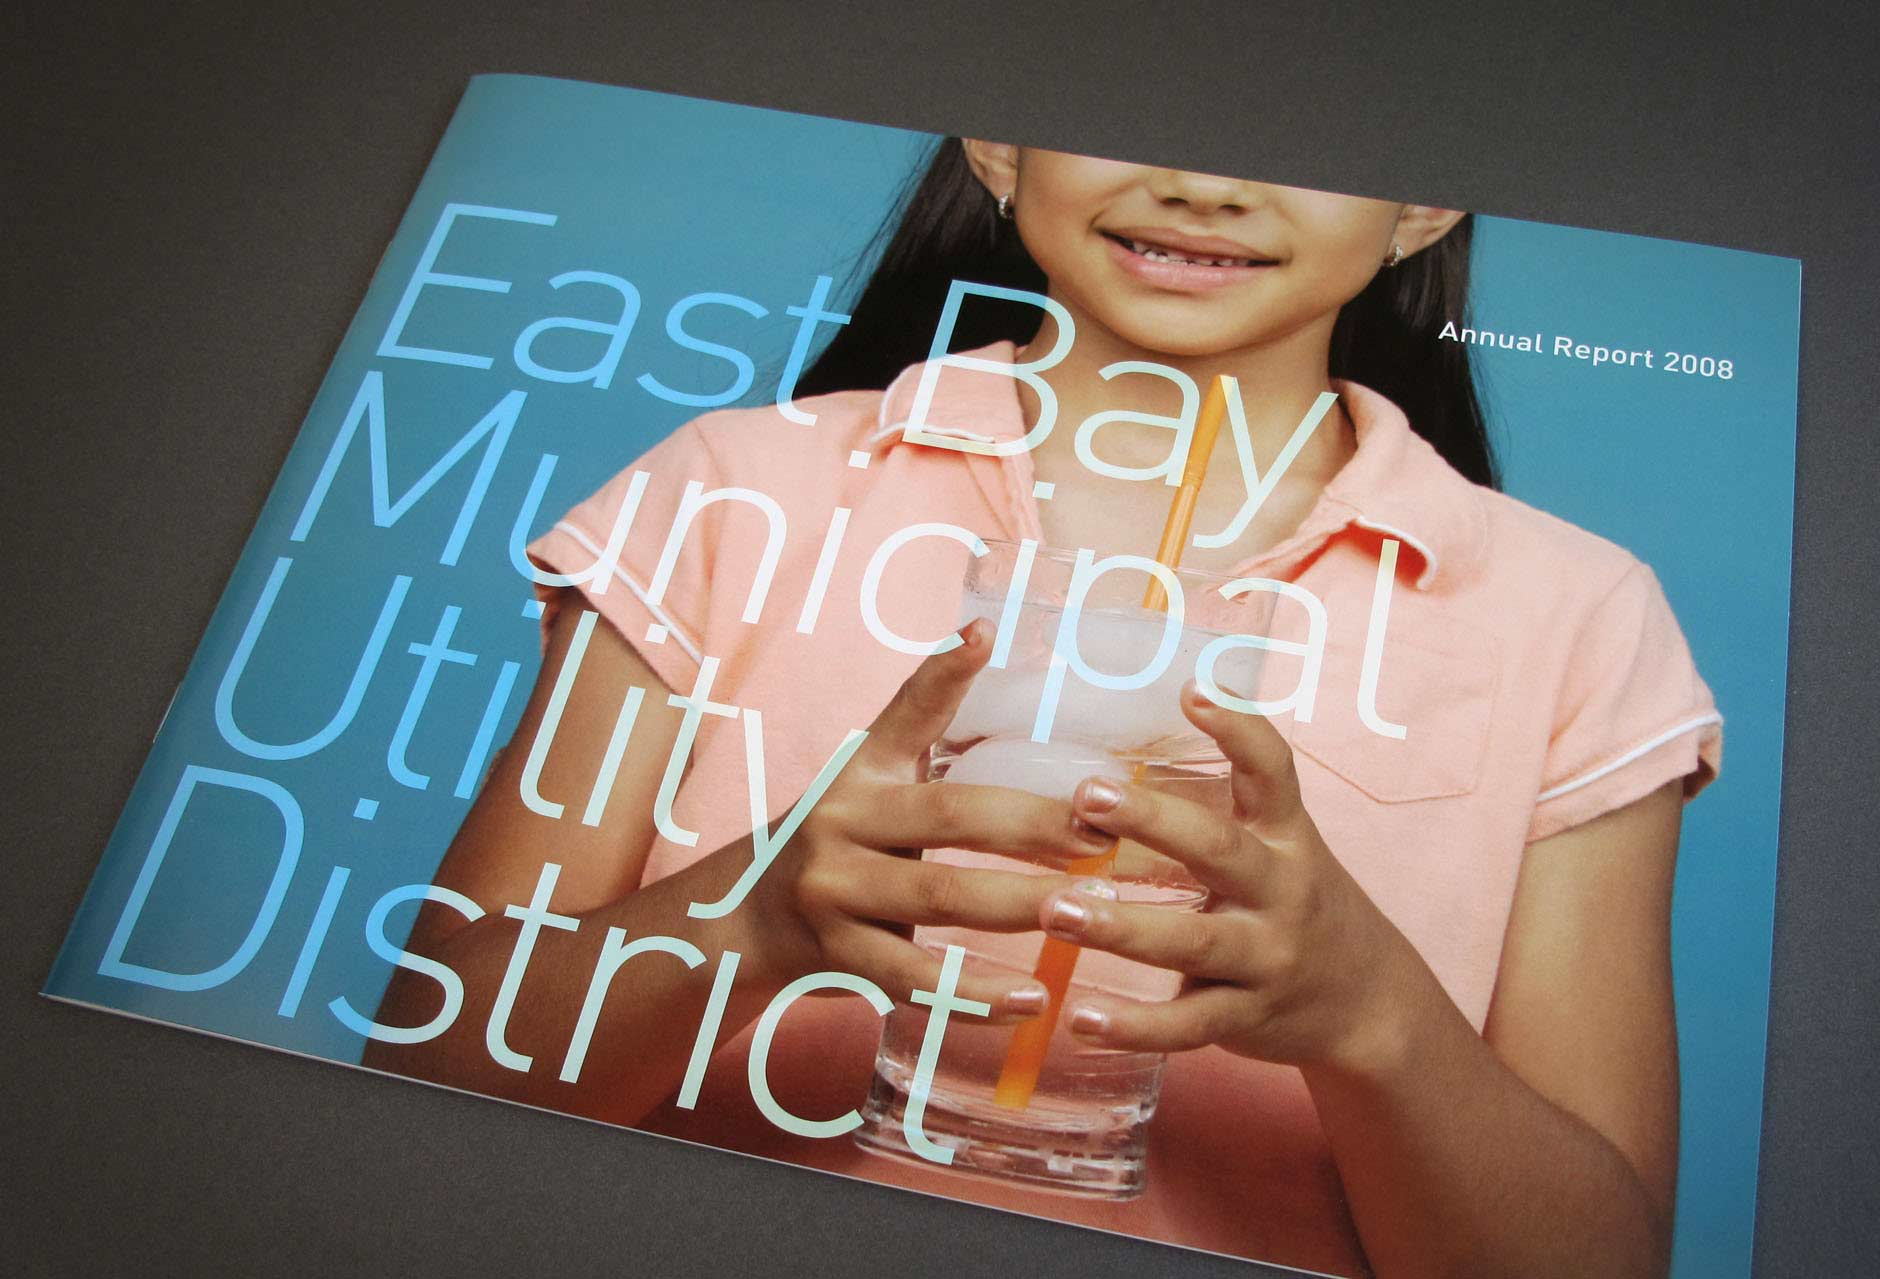 East Bay Municipal Utility District: Annual Report